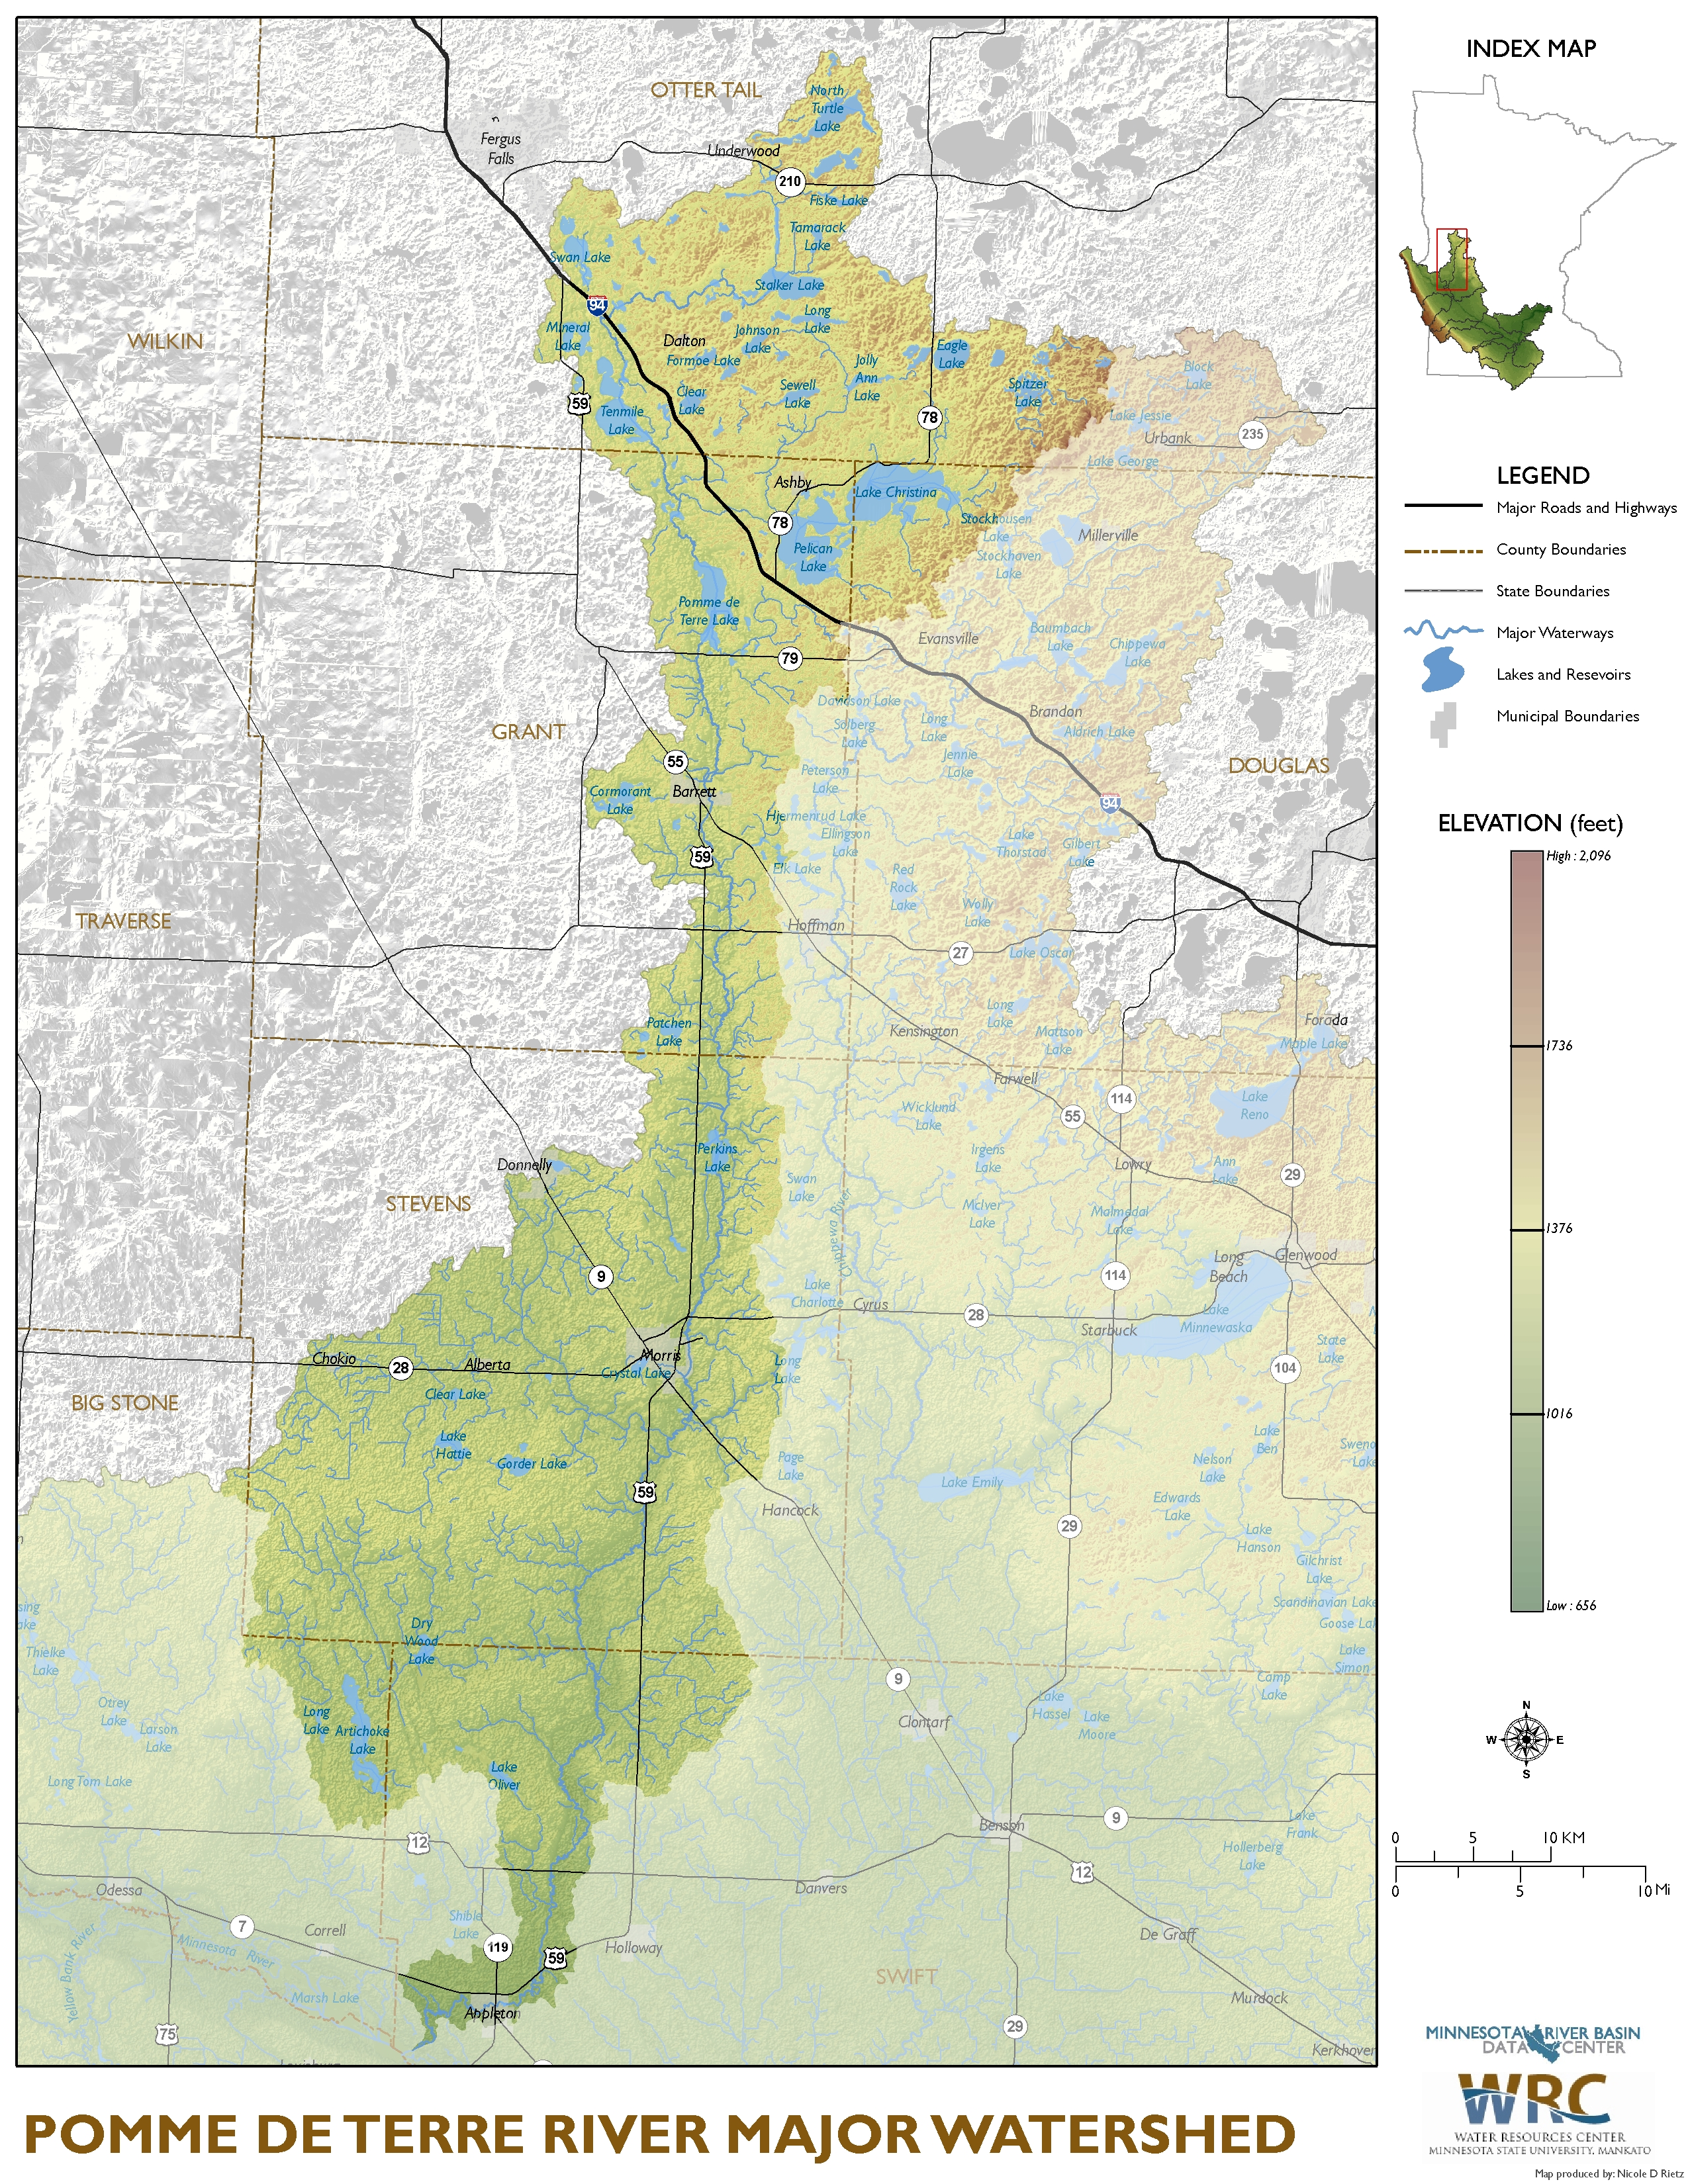 Pomme de Terre River Major Watershed Map